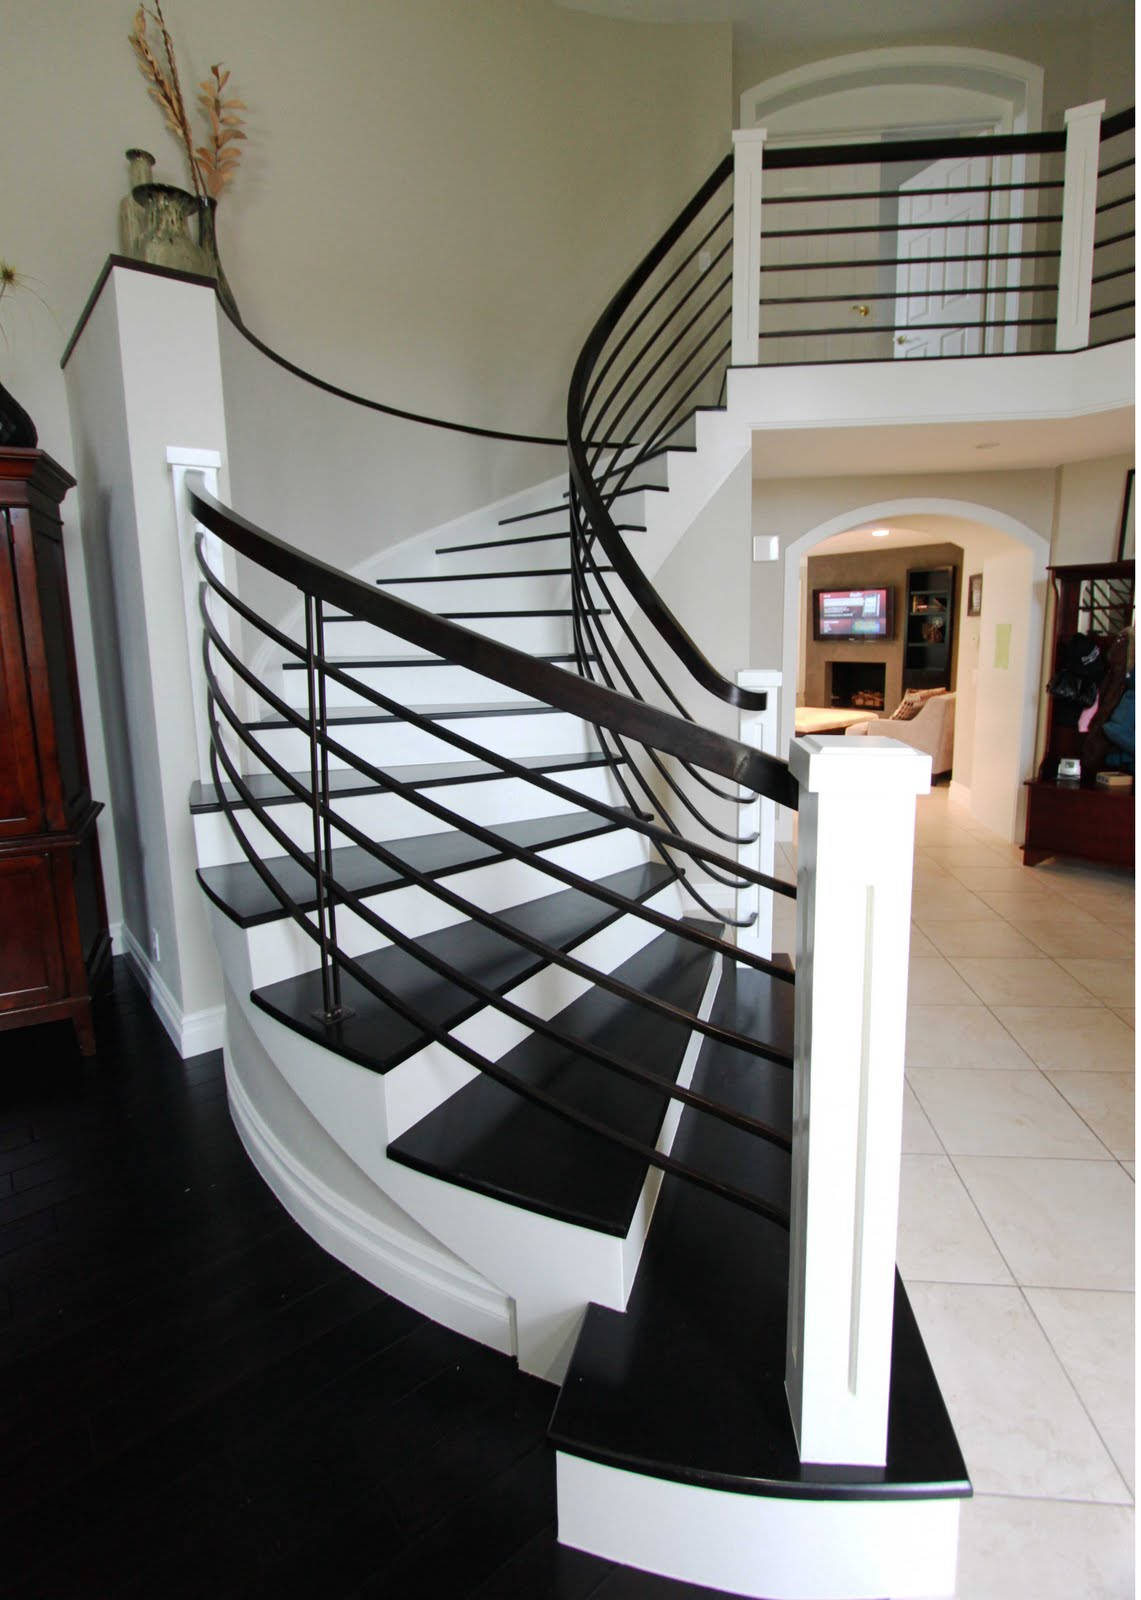 Stiles fischer interior design stairway to heaven for Interior staircase designs